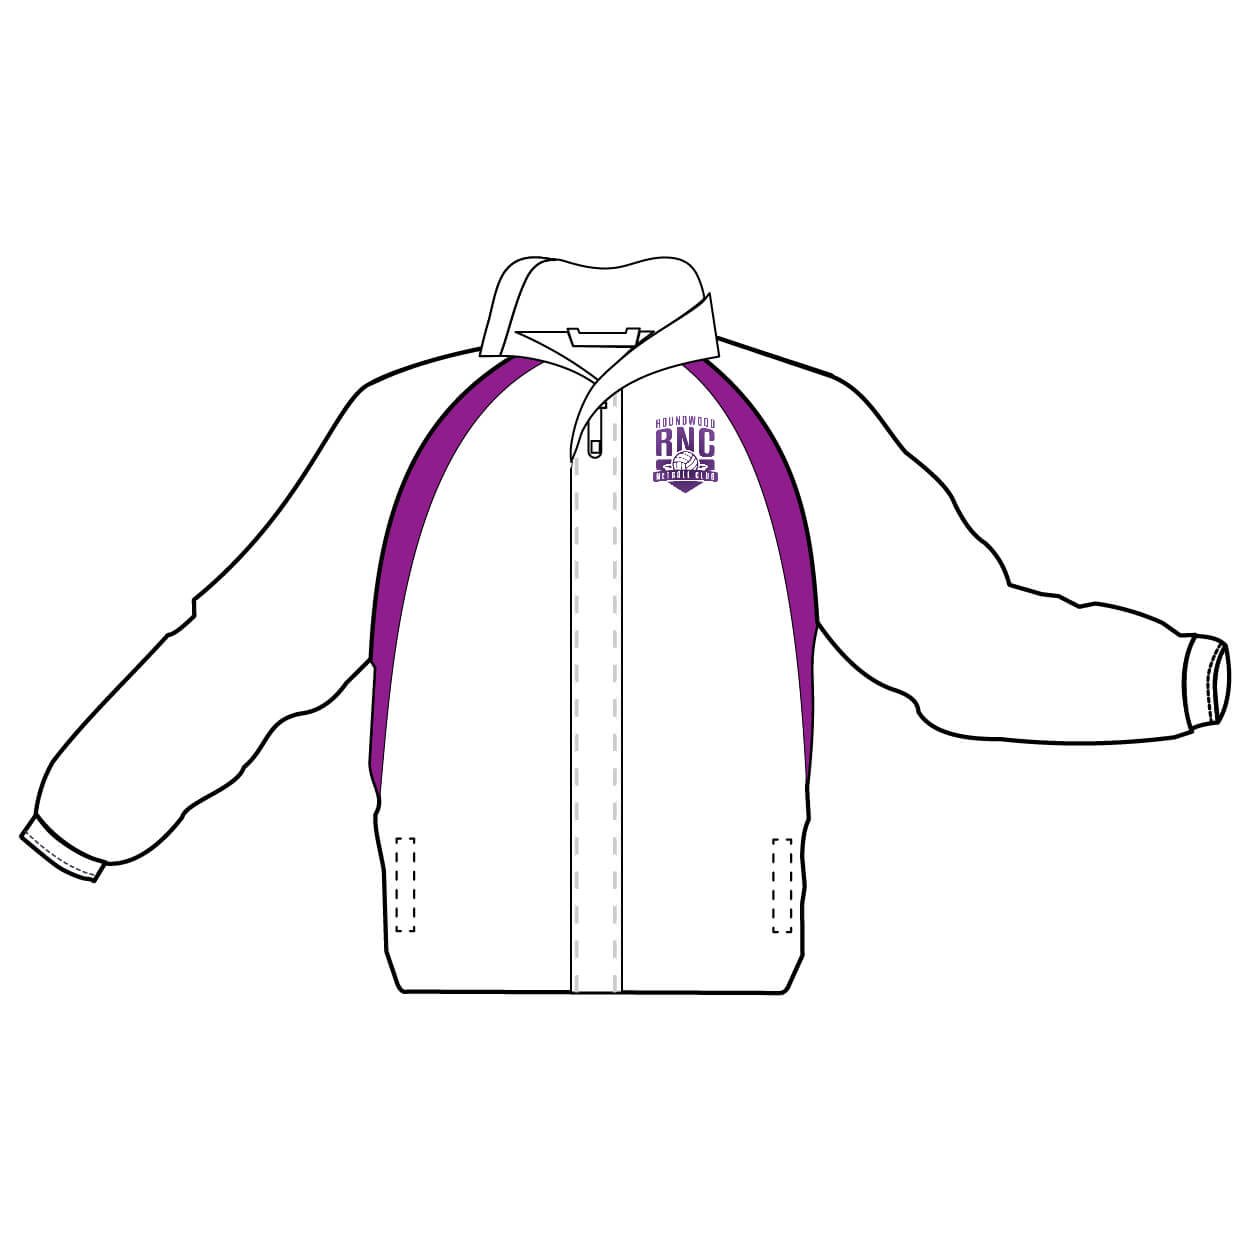 roundwood netball club_Umpire Jackets white-purple